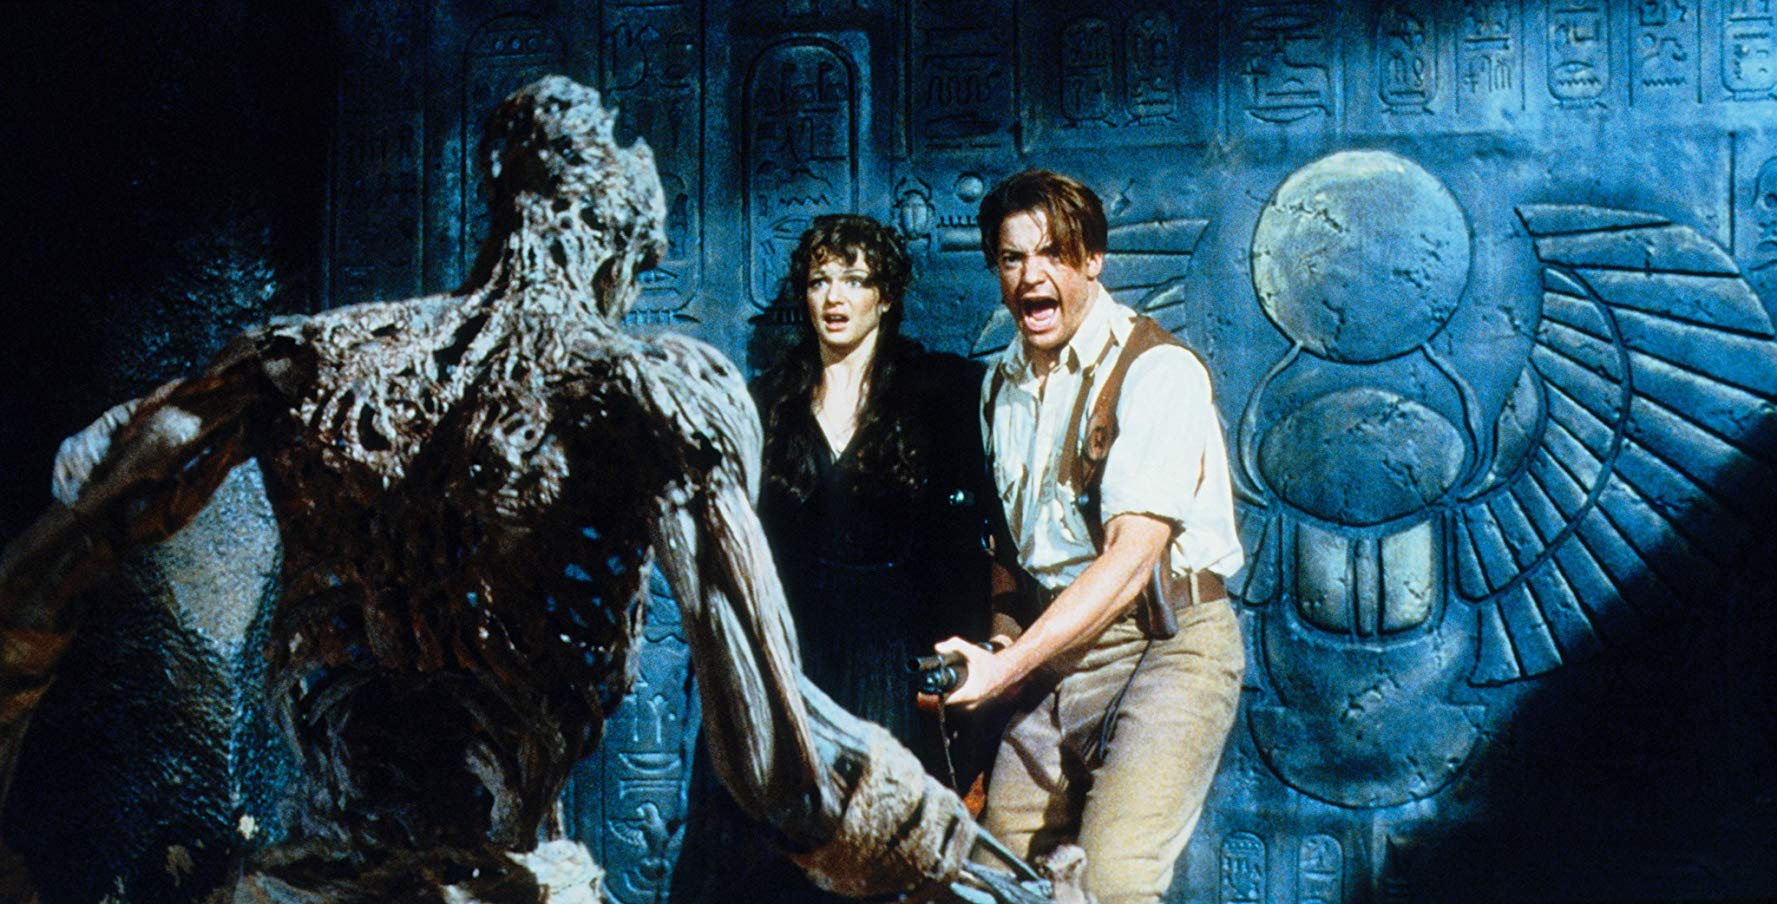 Rachel Weisz and Brendan Fraser face a zombified priest in The Mummy (1999)